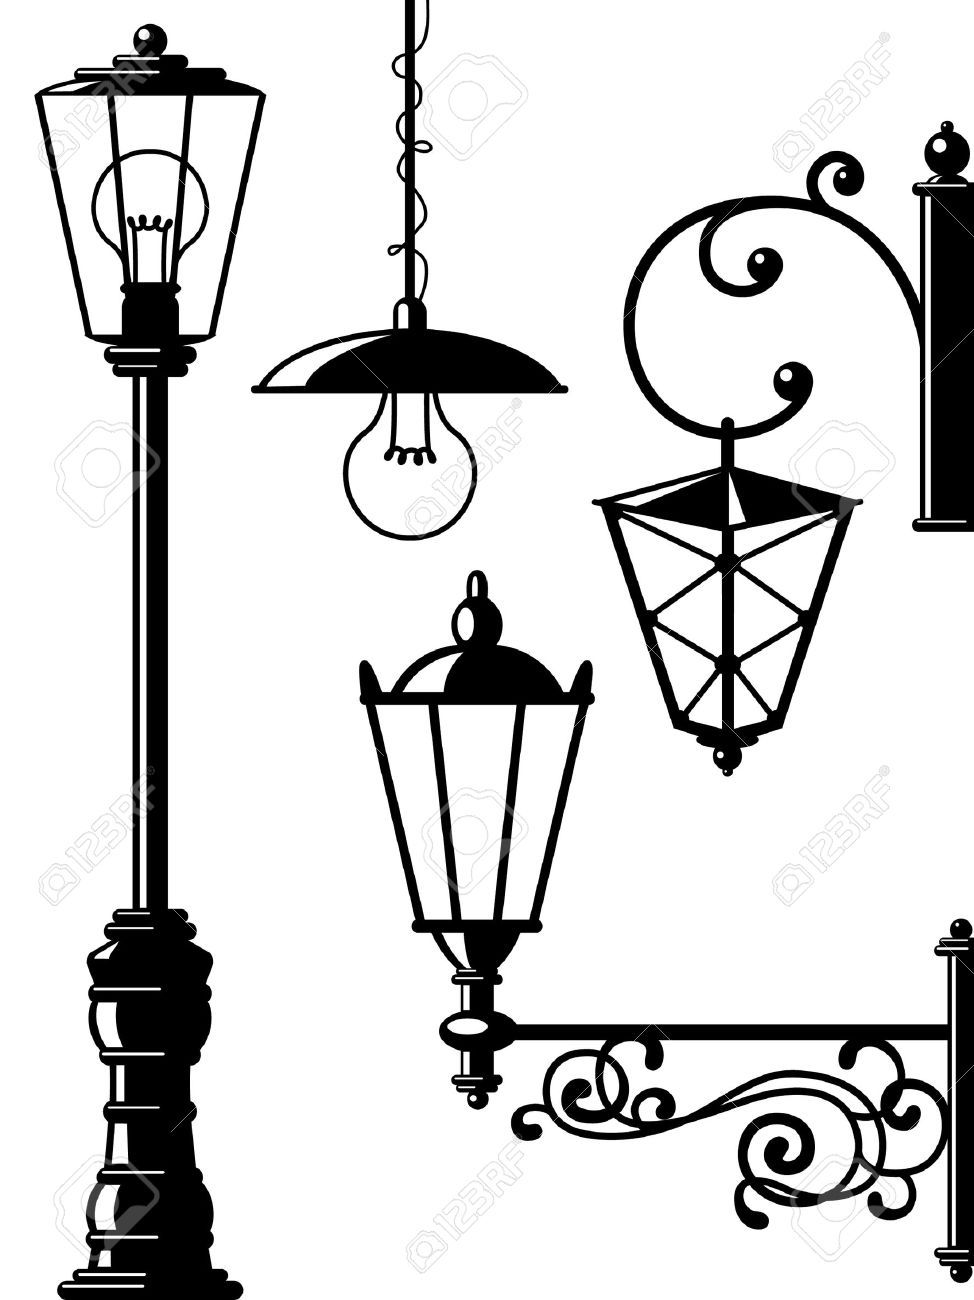 Street light clipart black and white roalty free clipart download Stock Vector | Simple Hardware Visual | Street lamp, Lantern ... clipart download